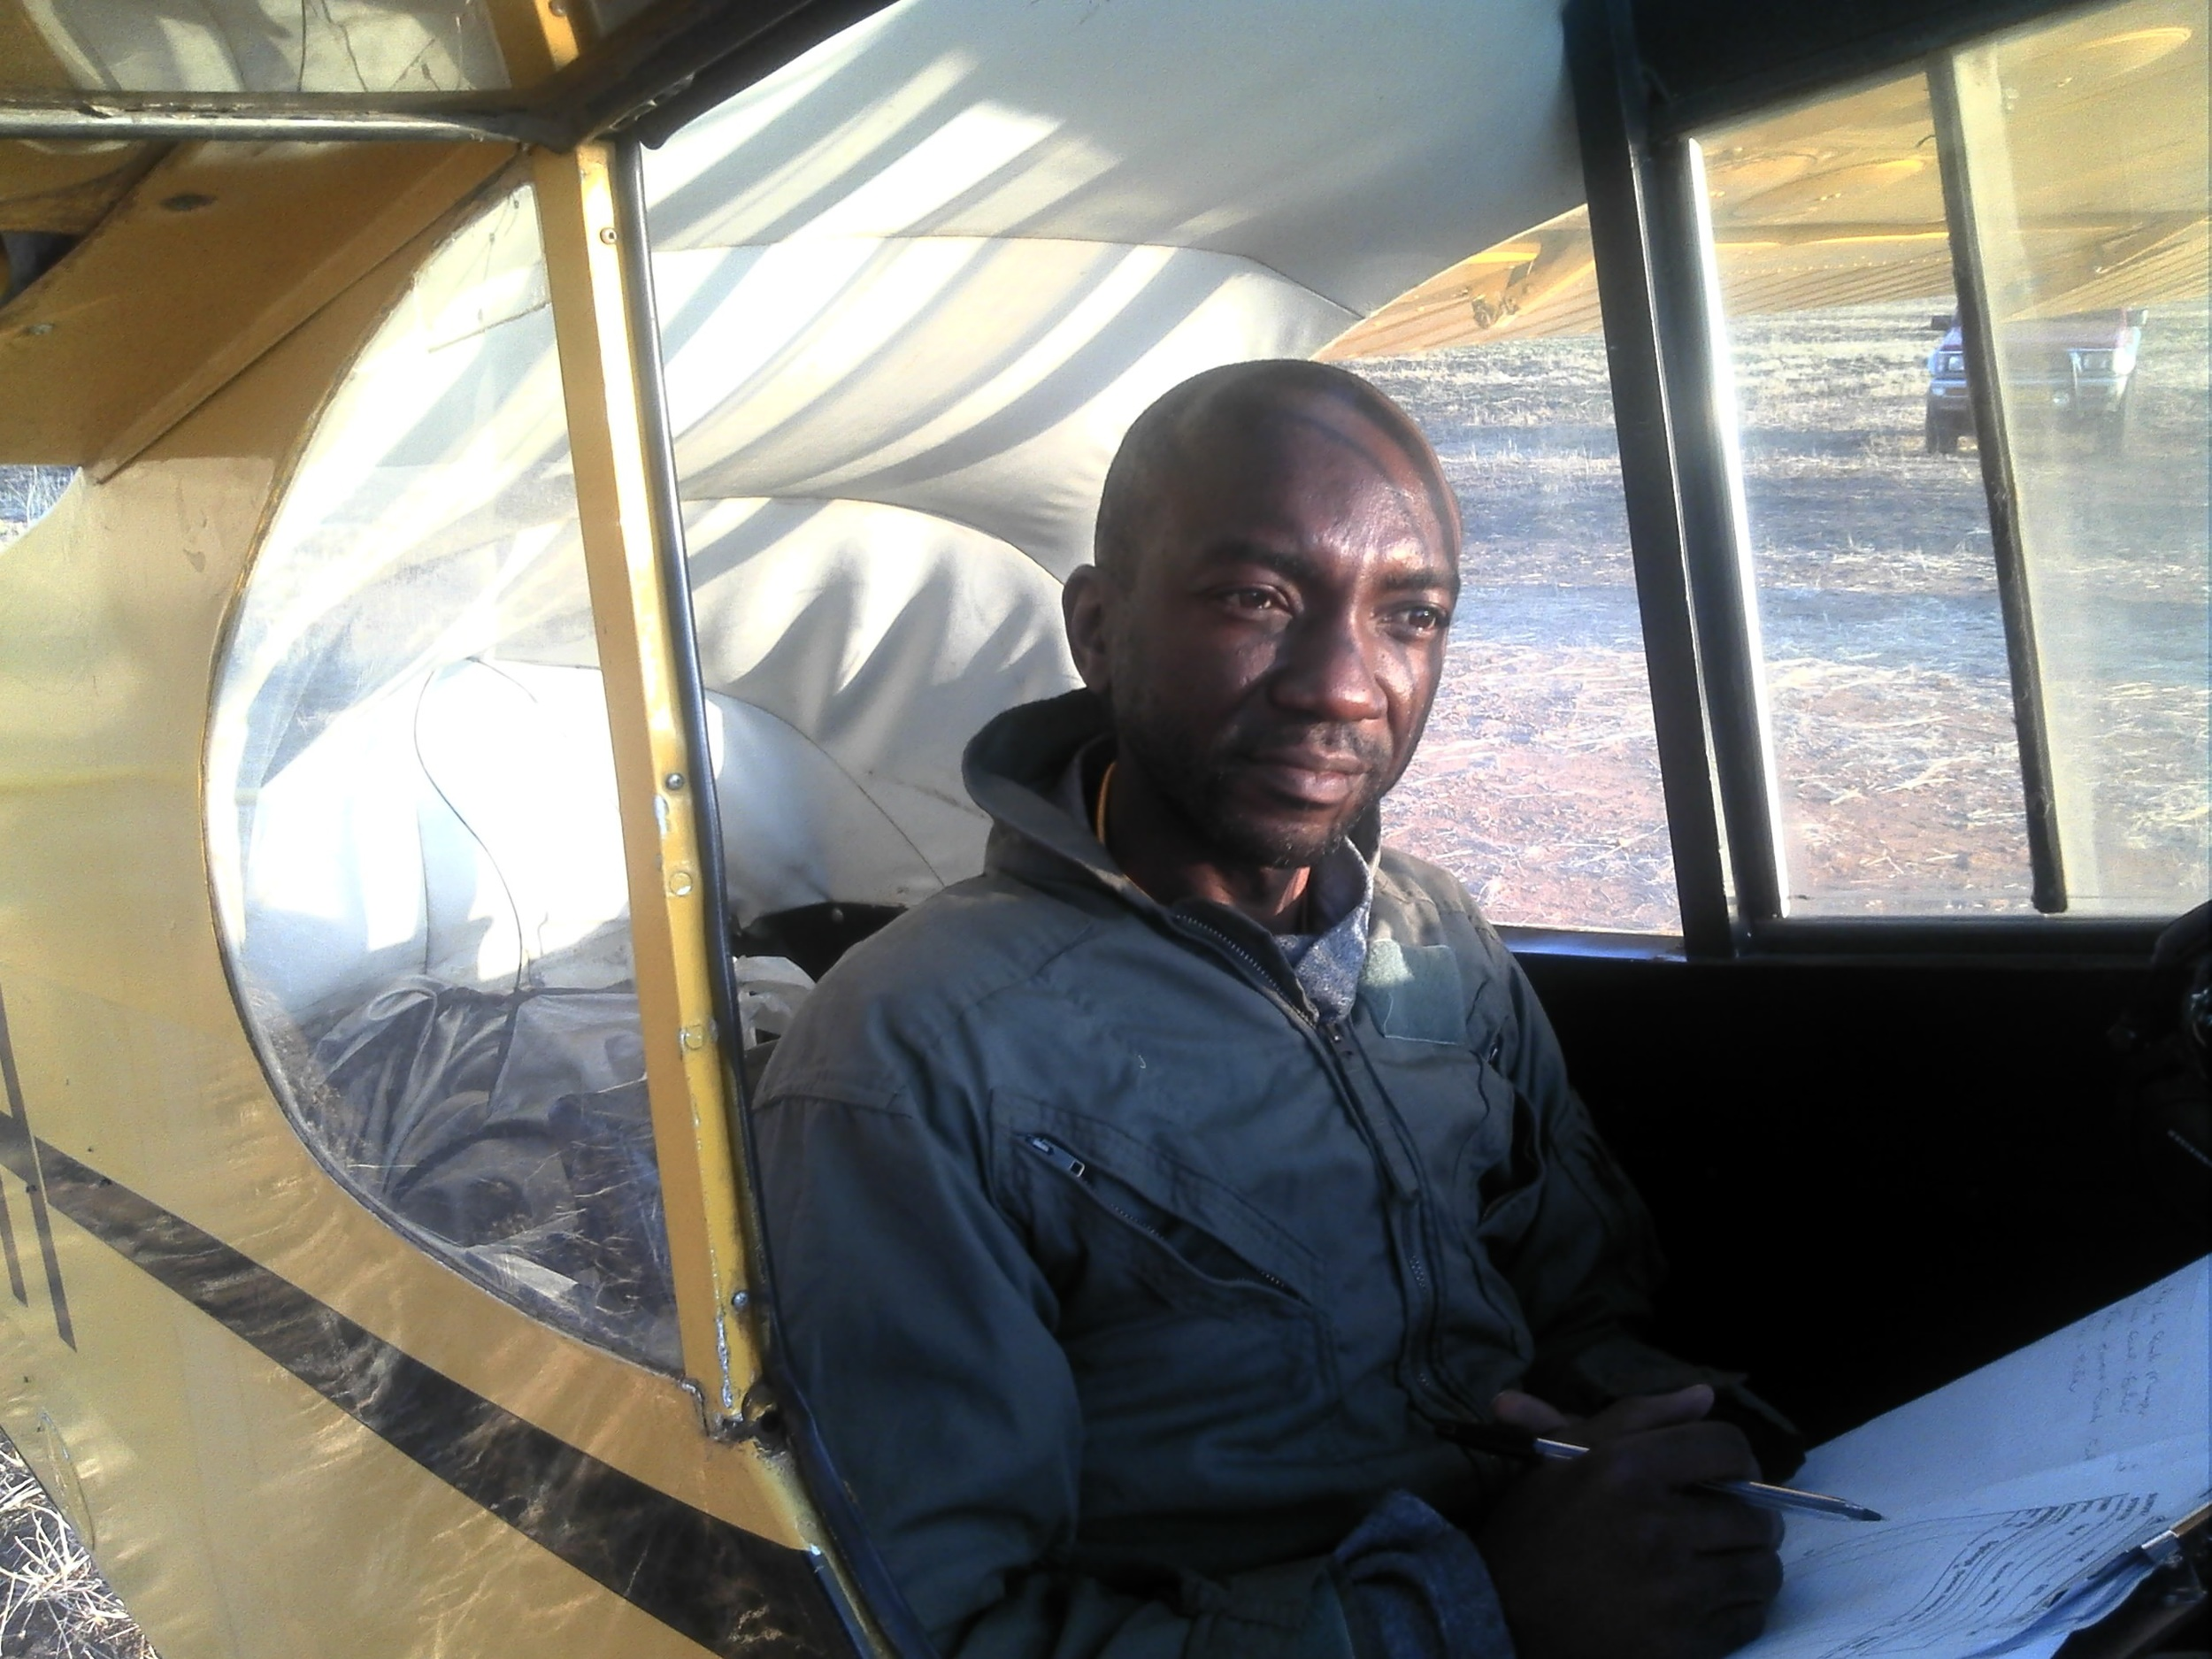 Senior Ecologist Greg Nyaguse of ZimParks prepares for take-off as the recorder/observer in the tiny Supercub aircraft used to conduct block counts in the hills of the Zambezi escarpment.  Makuti, July 2014